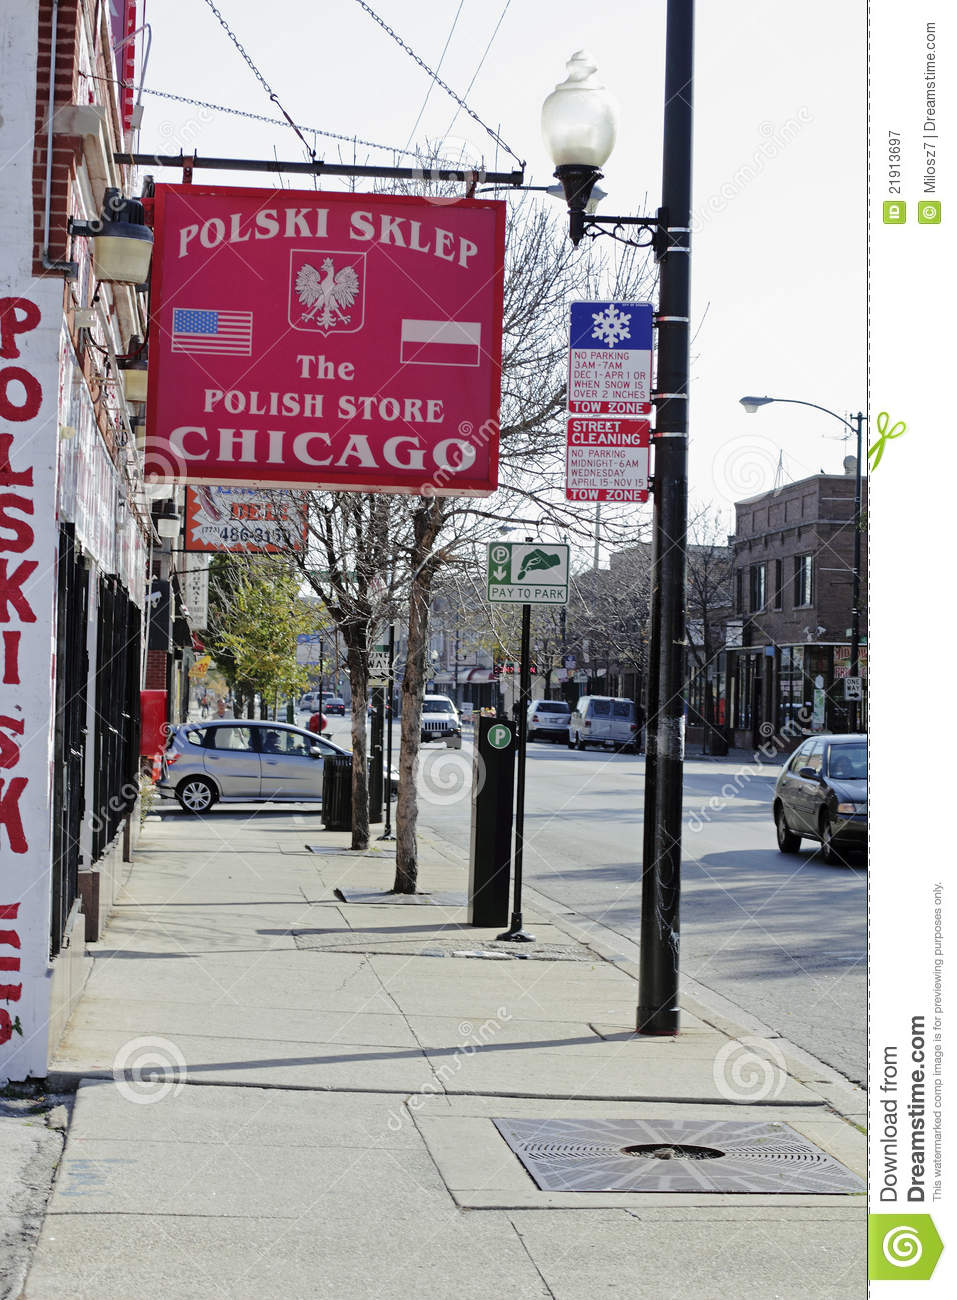 With you Polish stripper chicago think, that